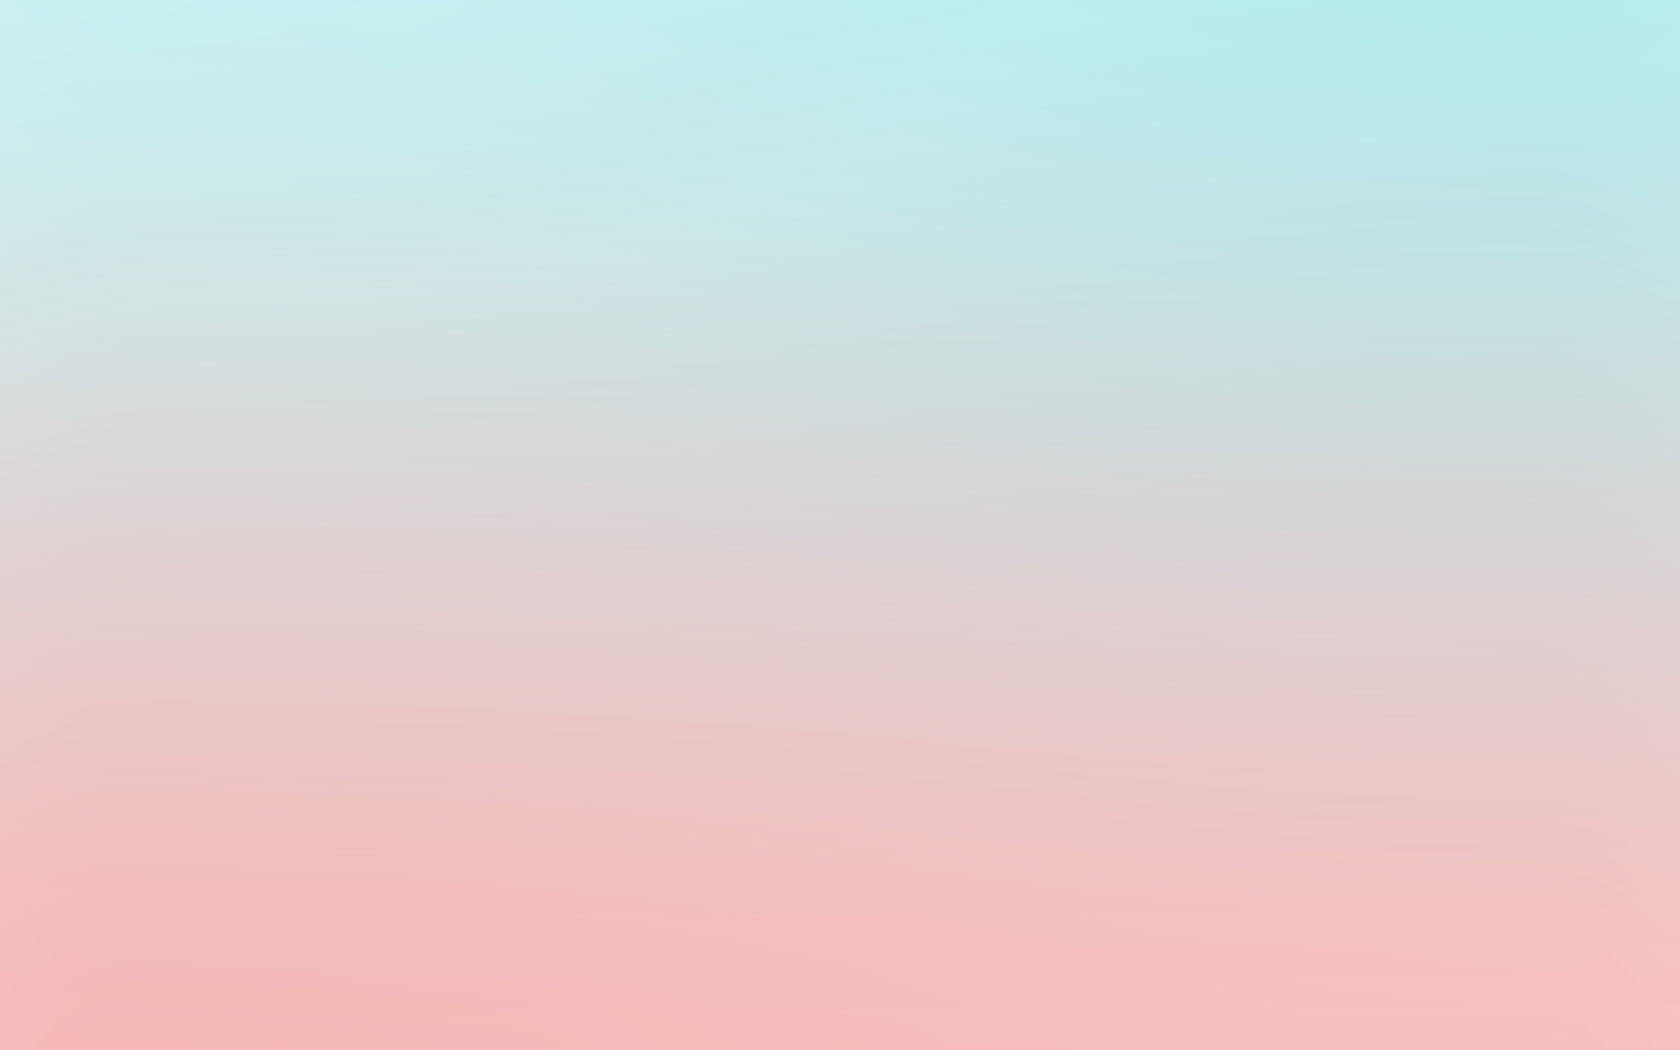 Fall Wallpaper For Macbook Air Sm40 Blue Red Soft Pastel Blur Gradation Wallpaper